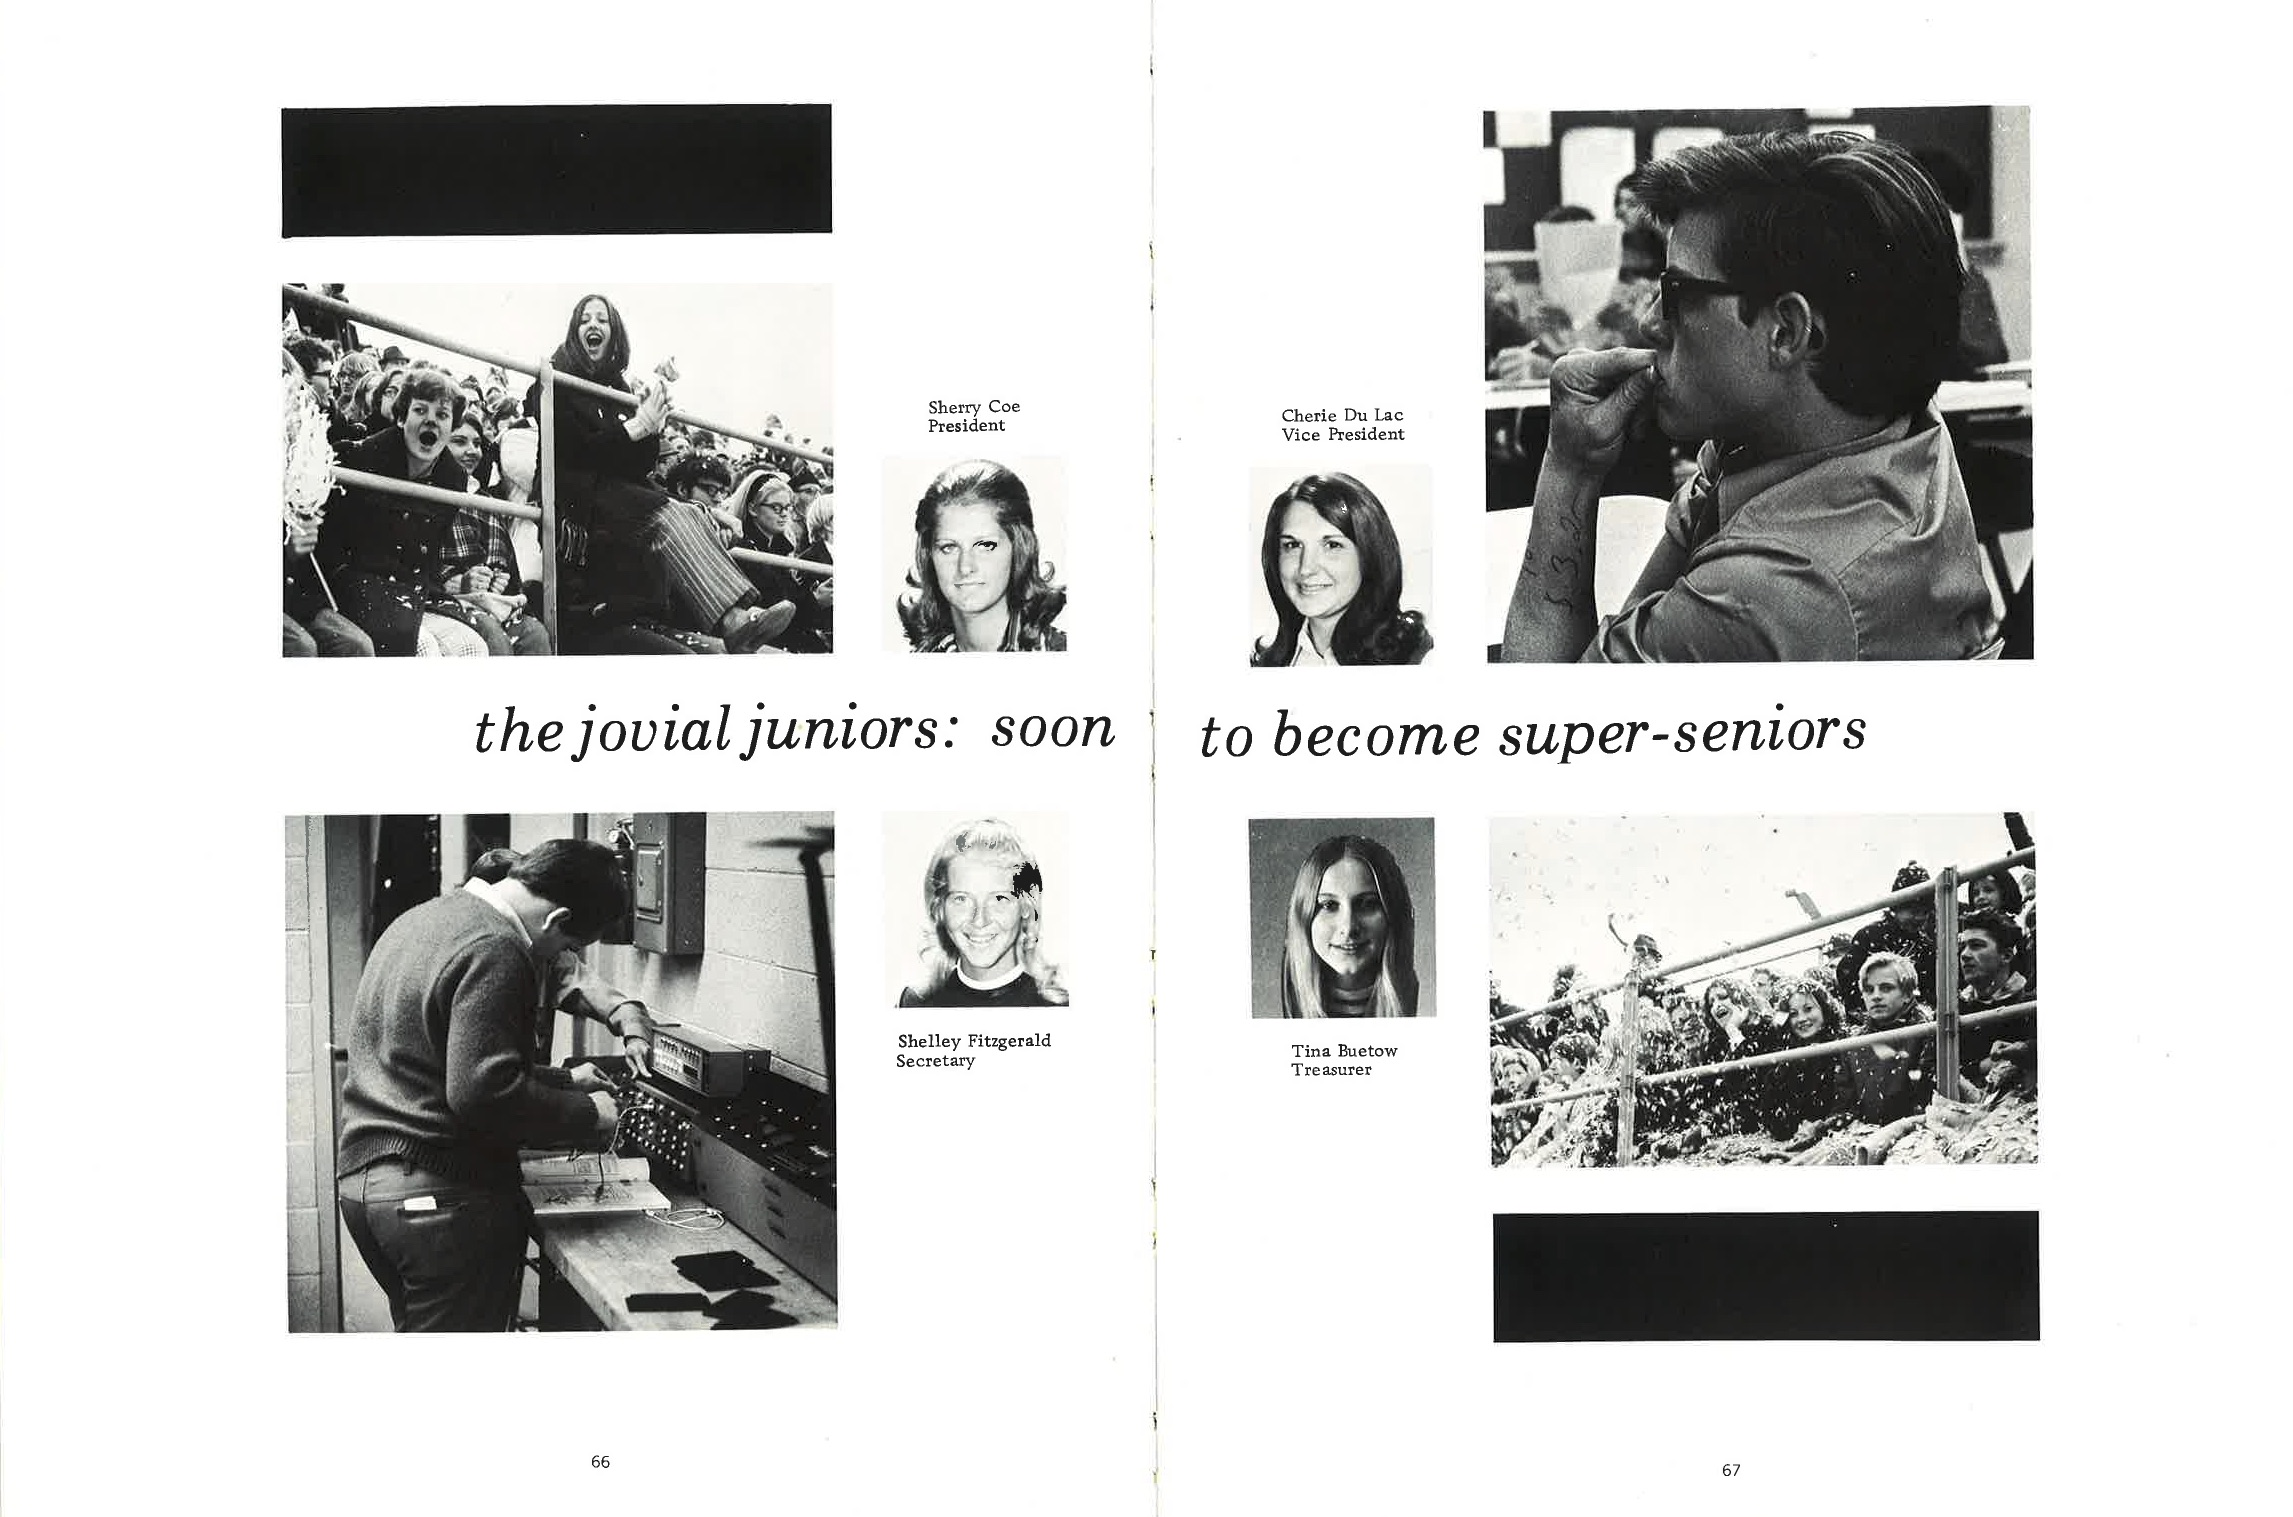 1971_Yearbook_66-67.jpg